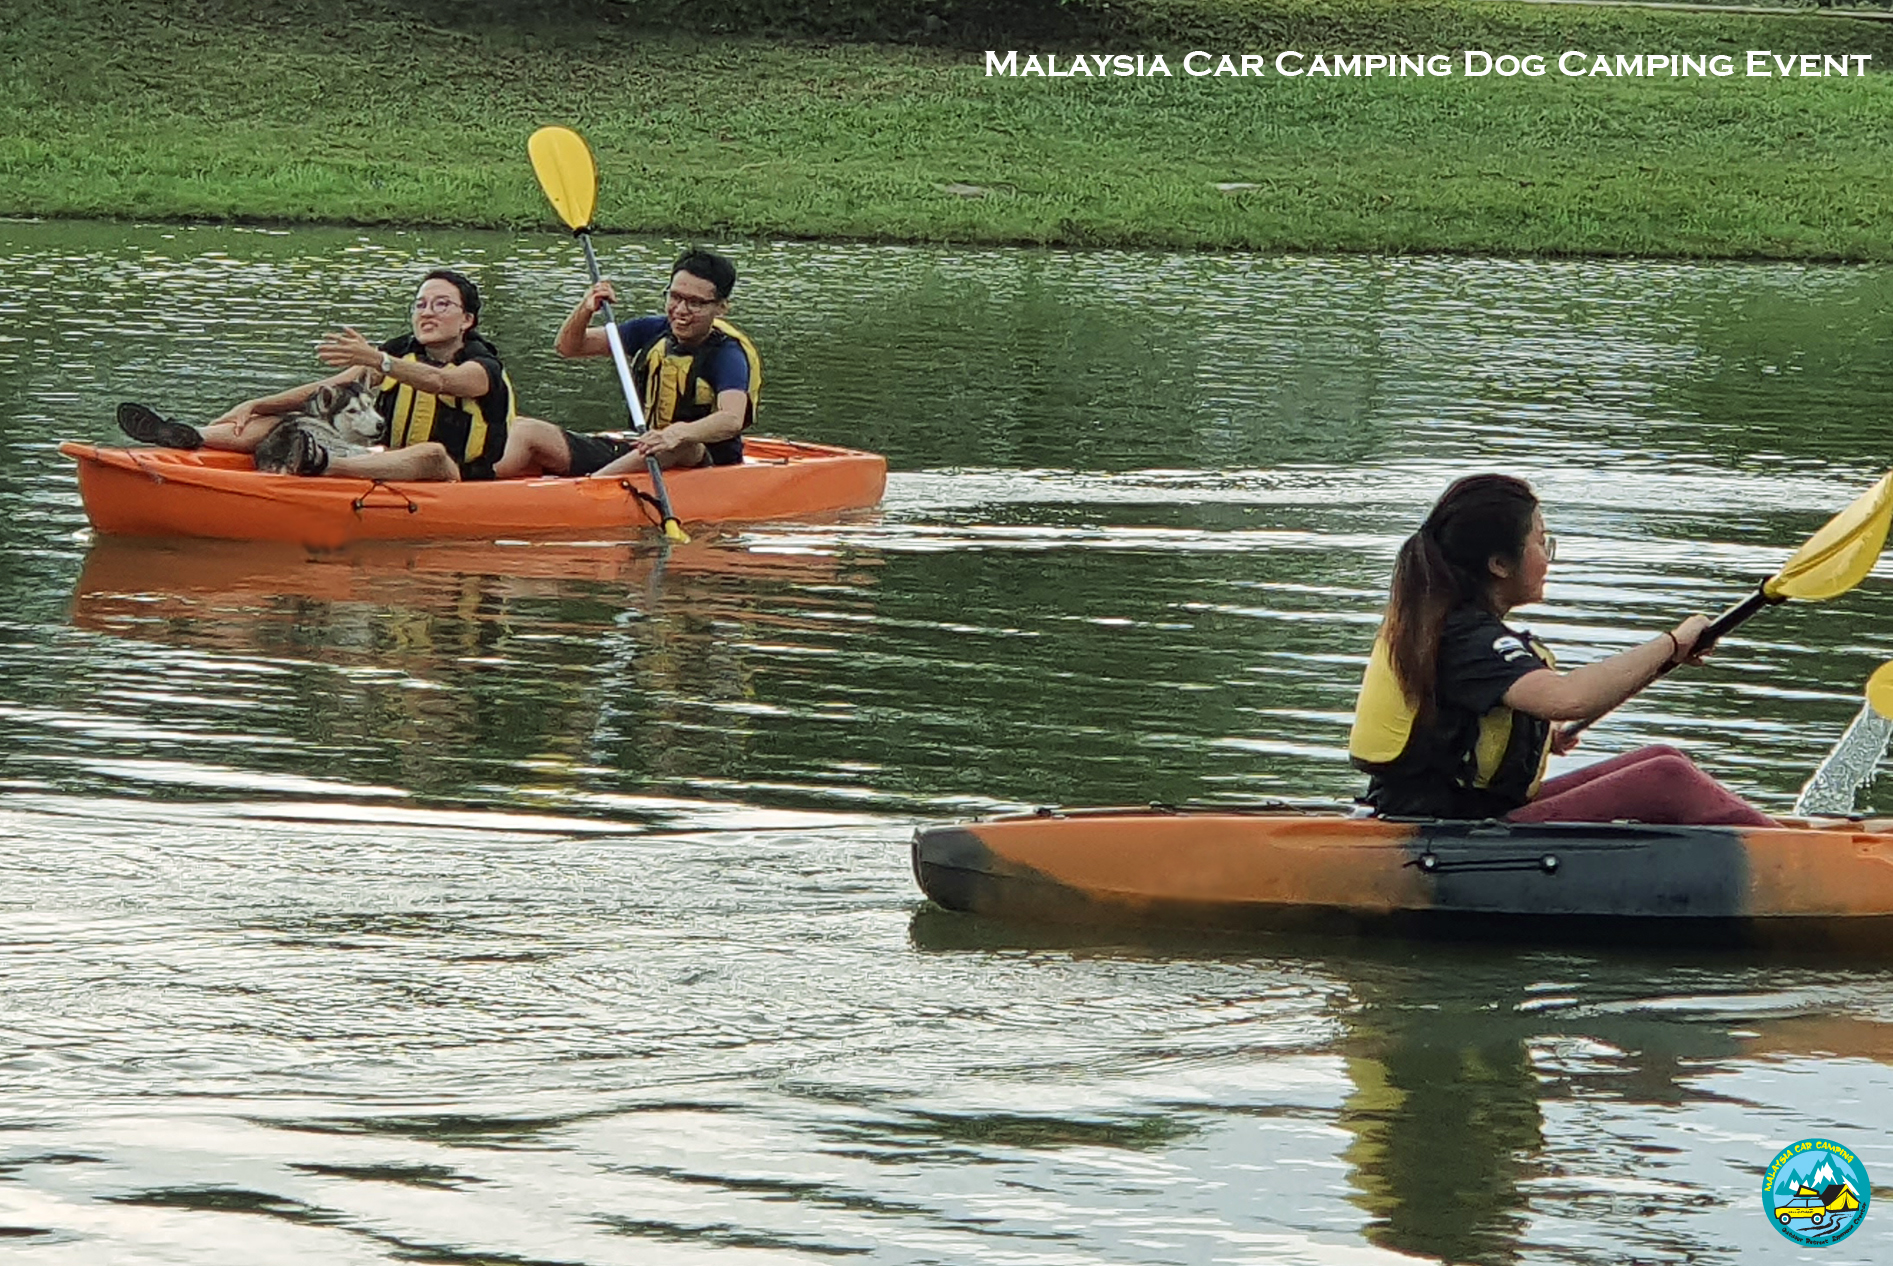 kayaking_dog_dog_camping_event_selangor_camping_site_malaysia_car_camping_private_event_organizer-8